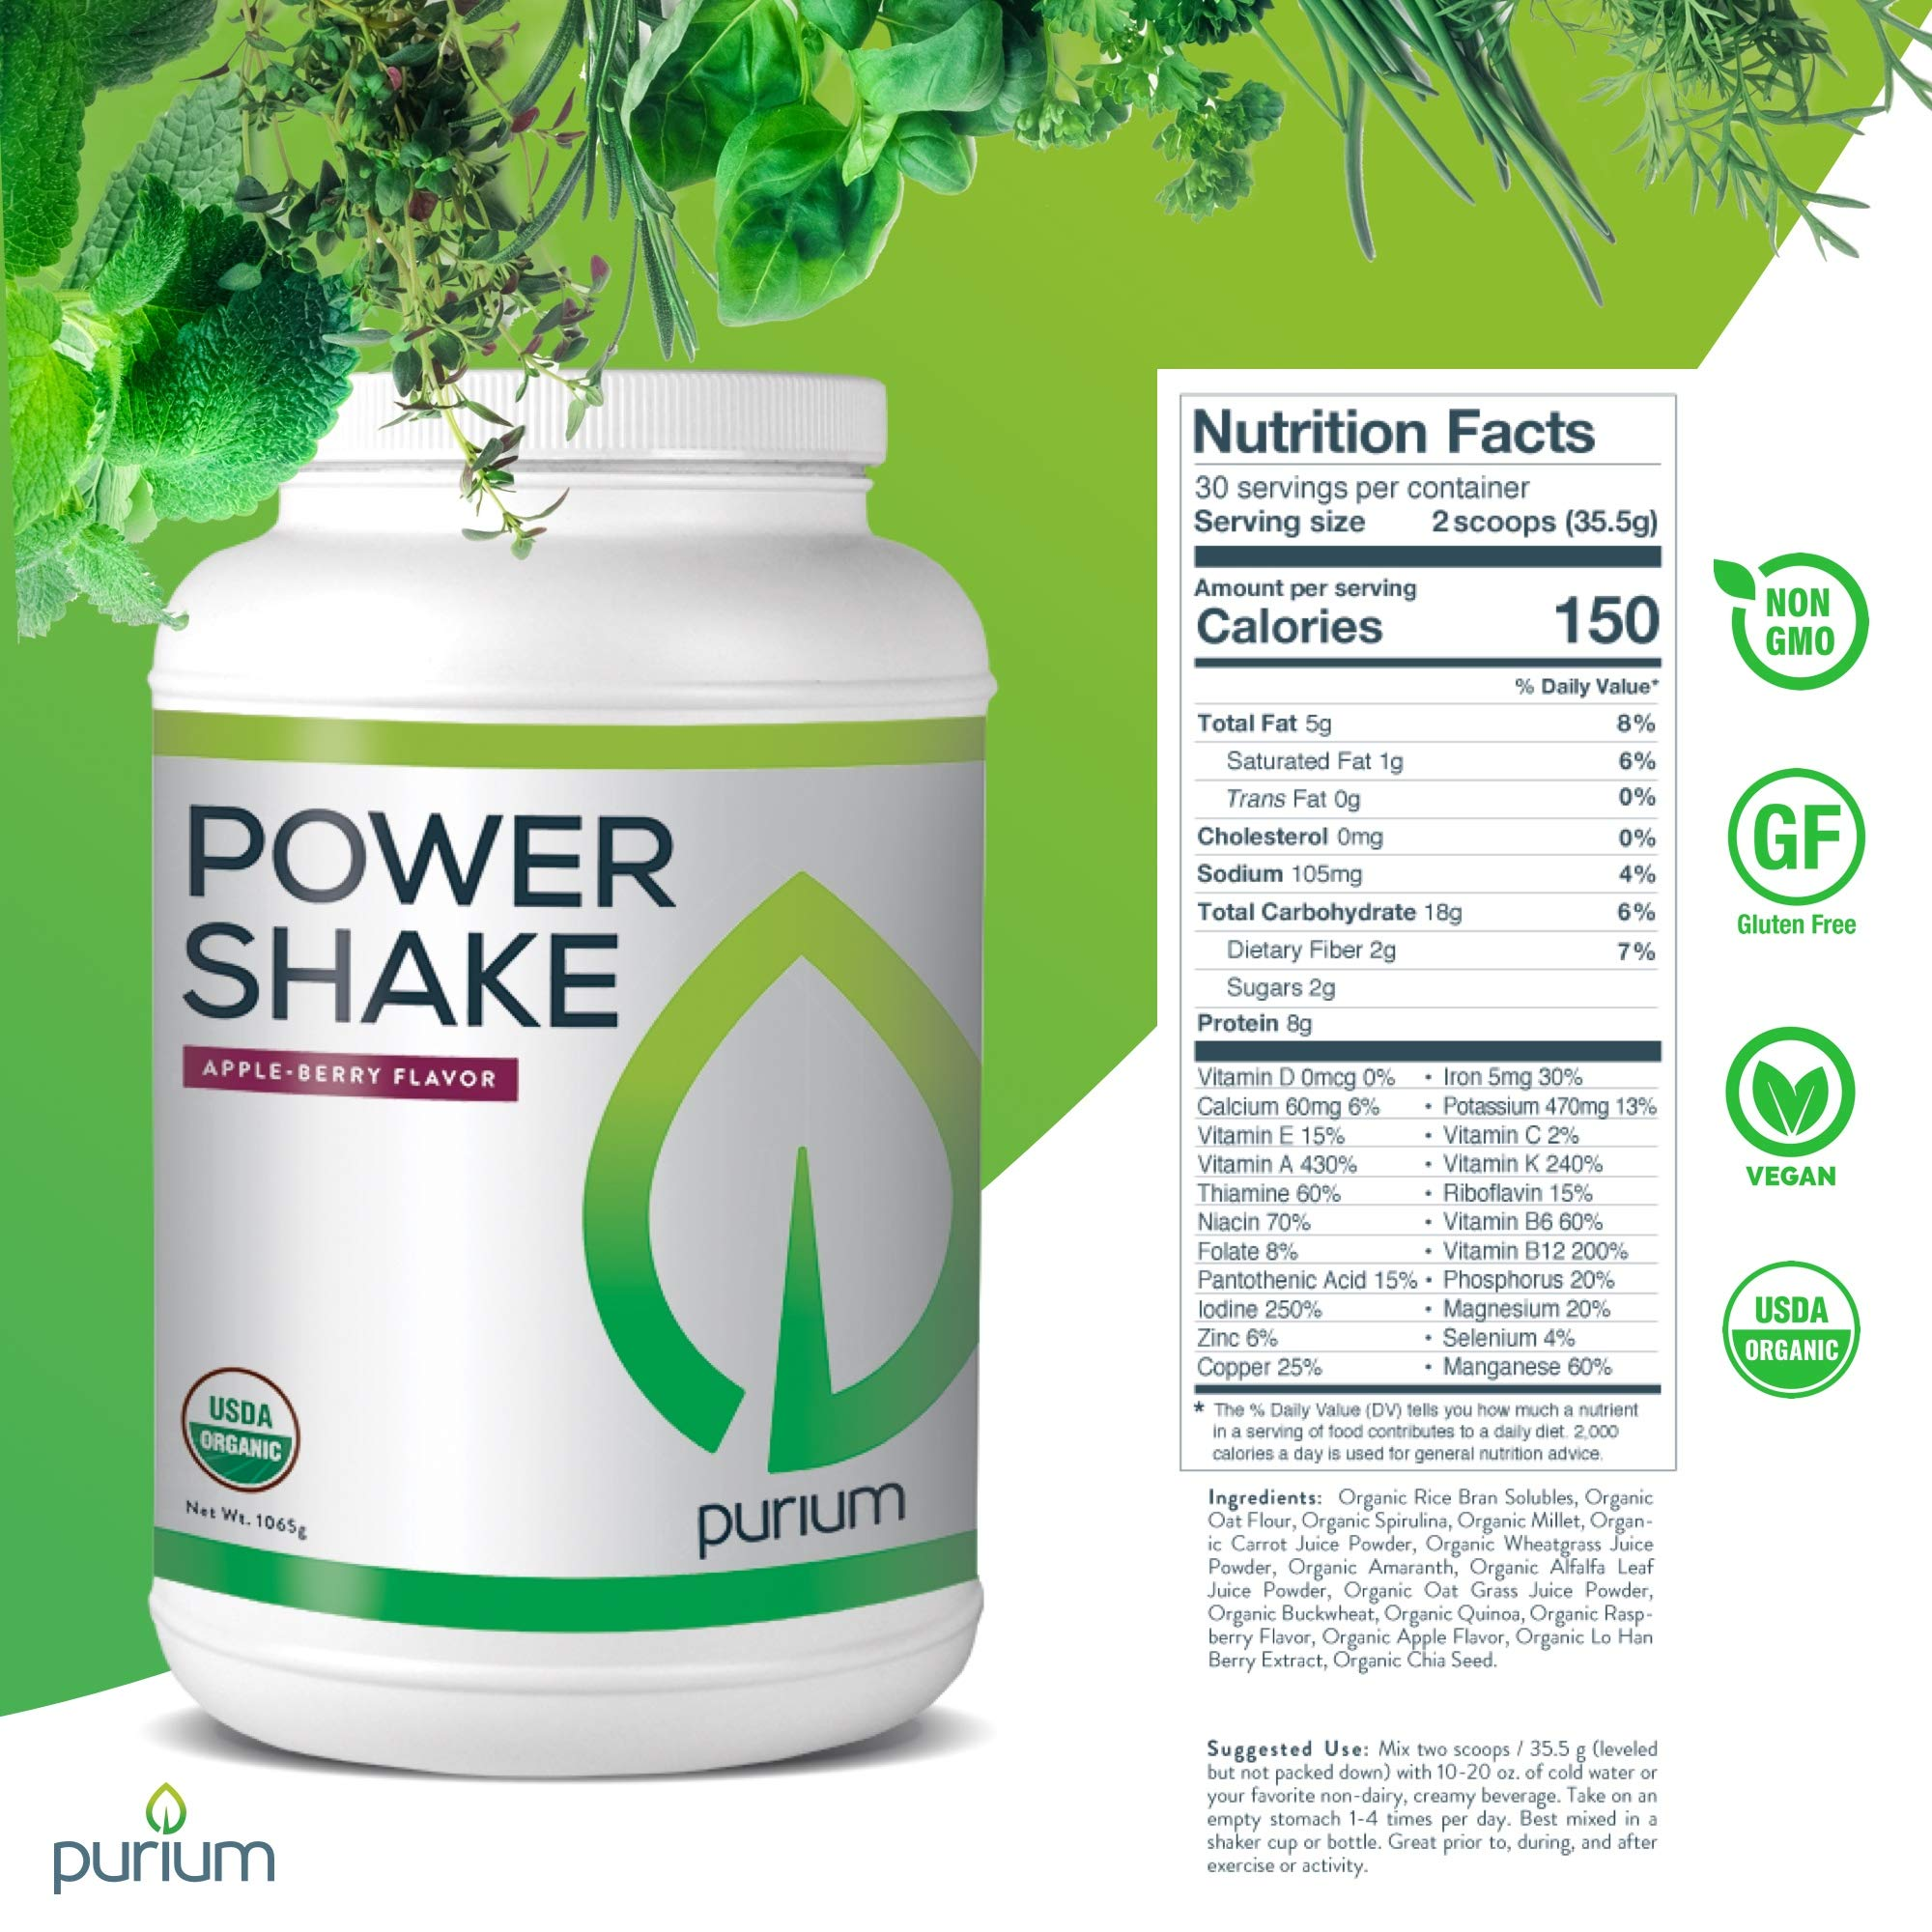 Purium Power Shake - Apple Berry Flavor - 1065 grams - Vegan Meal Replacement Powder, Protein, Vitamins & Minerals - Certified USDA Organic, Gluten Free, Kosher - 30 Servings by Purium (Image #4)